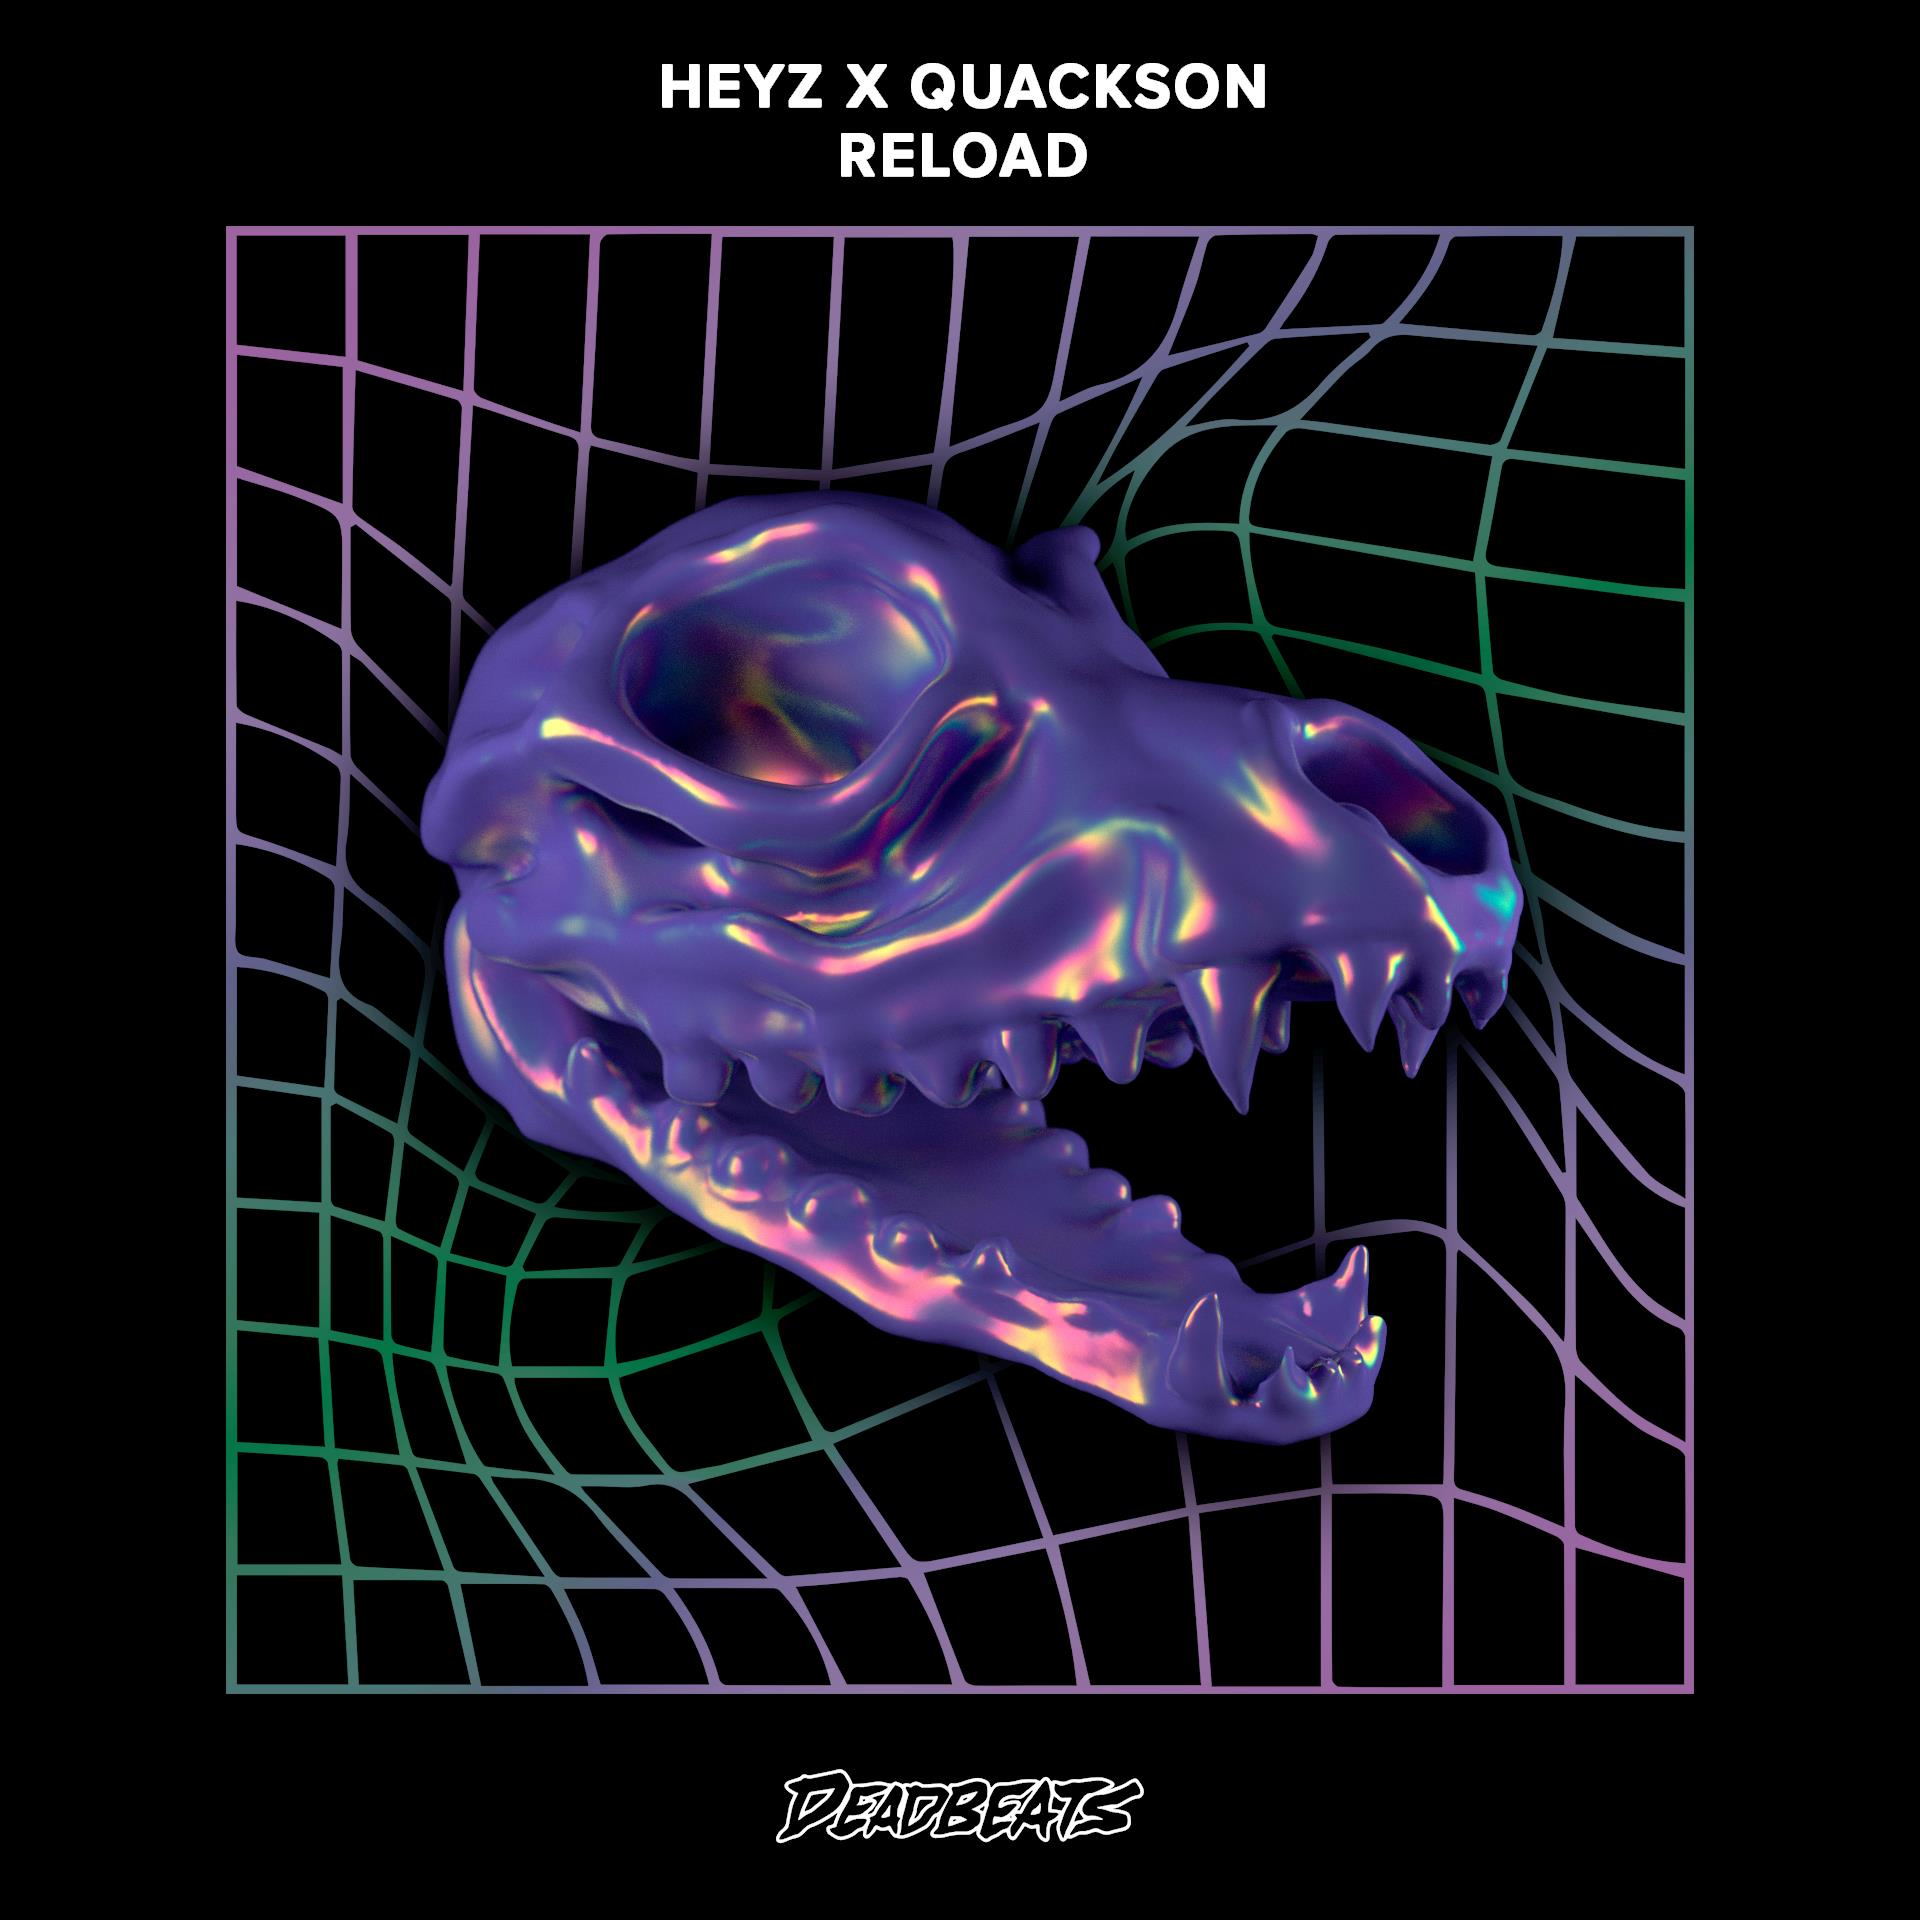 FEATURED LOCAL MUSIC: Reload by HEYZ & Quackson